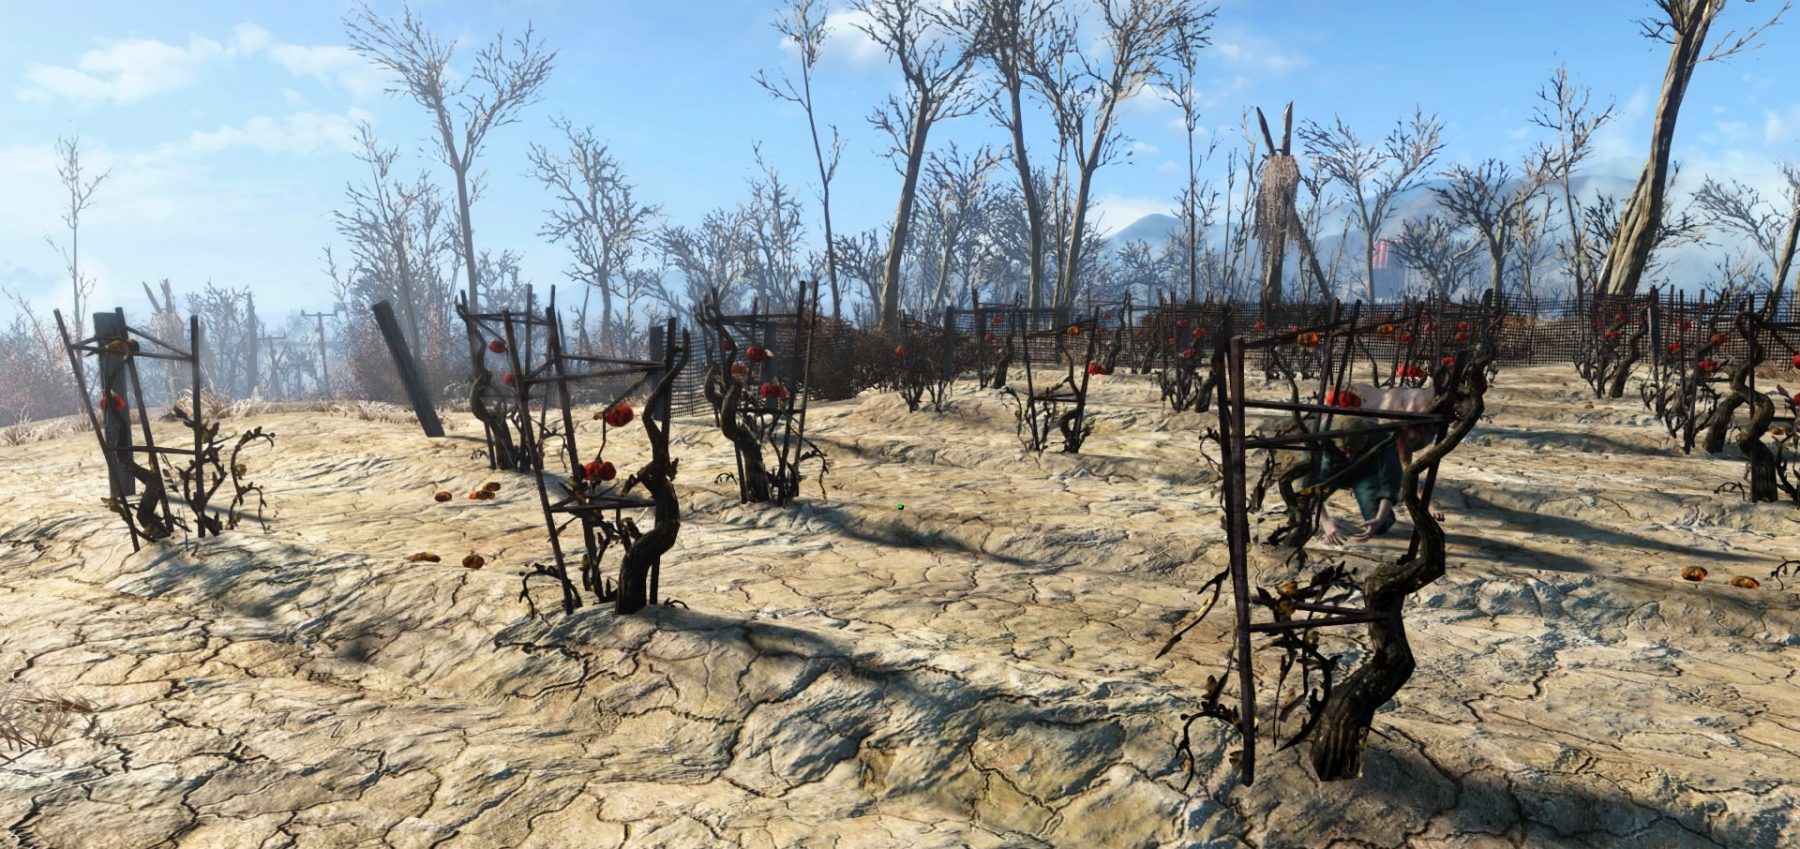 Abernathy farm in Fallout 4